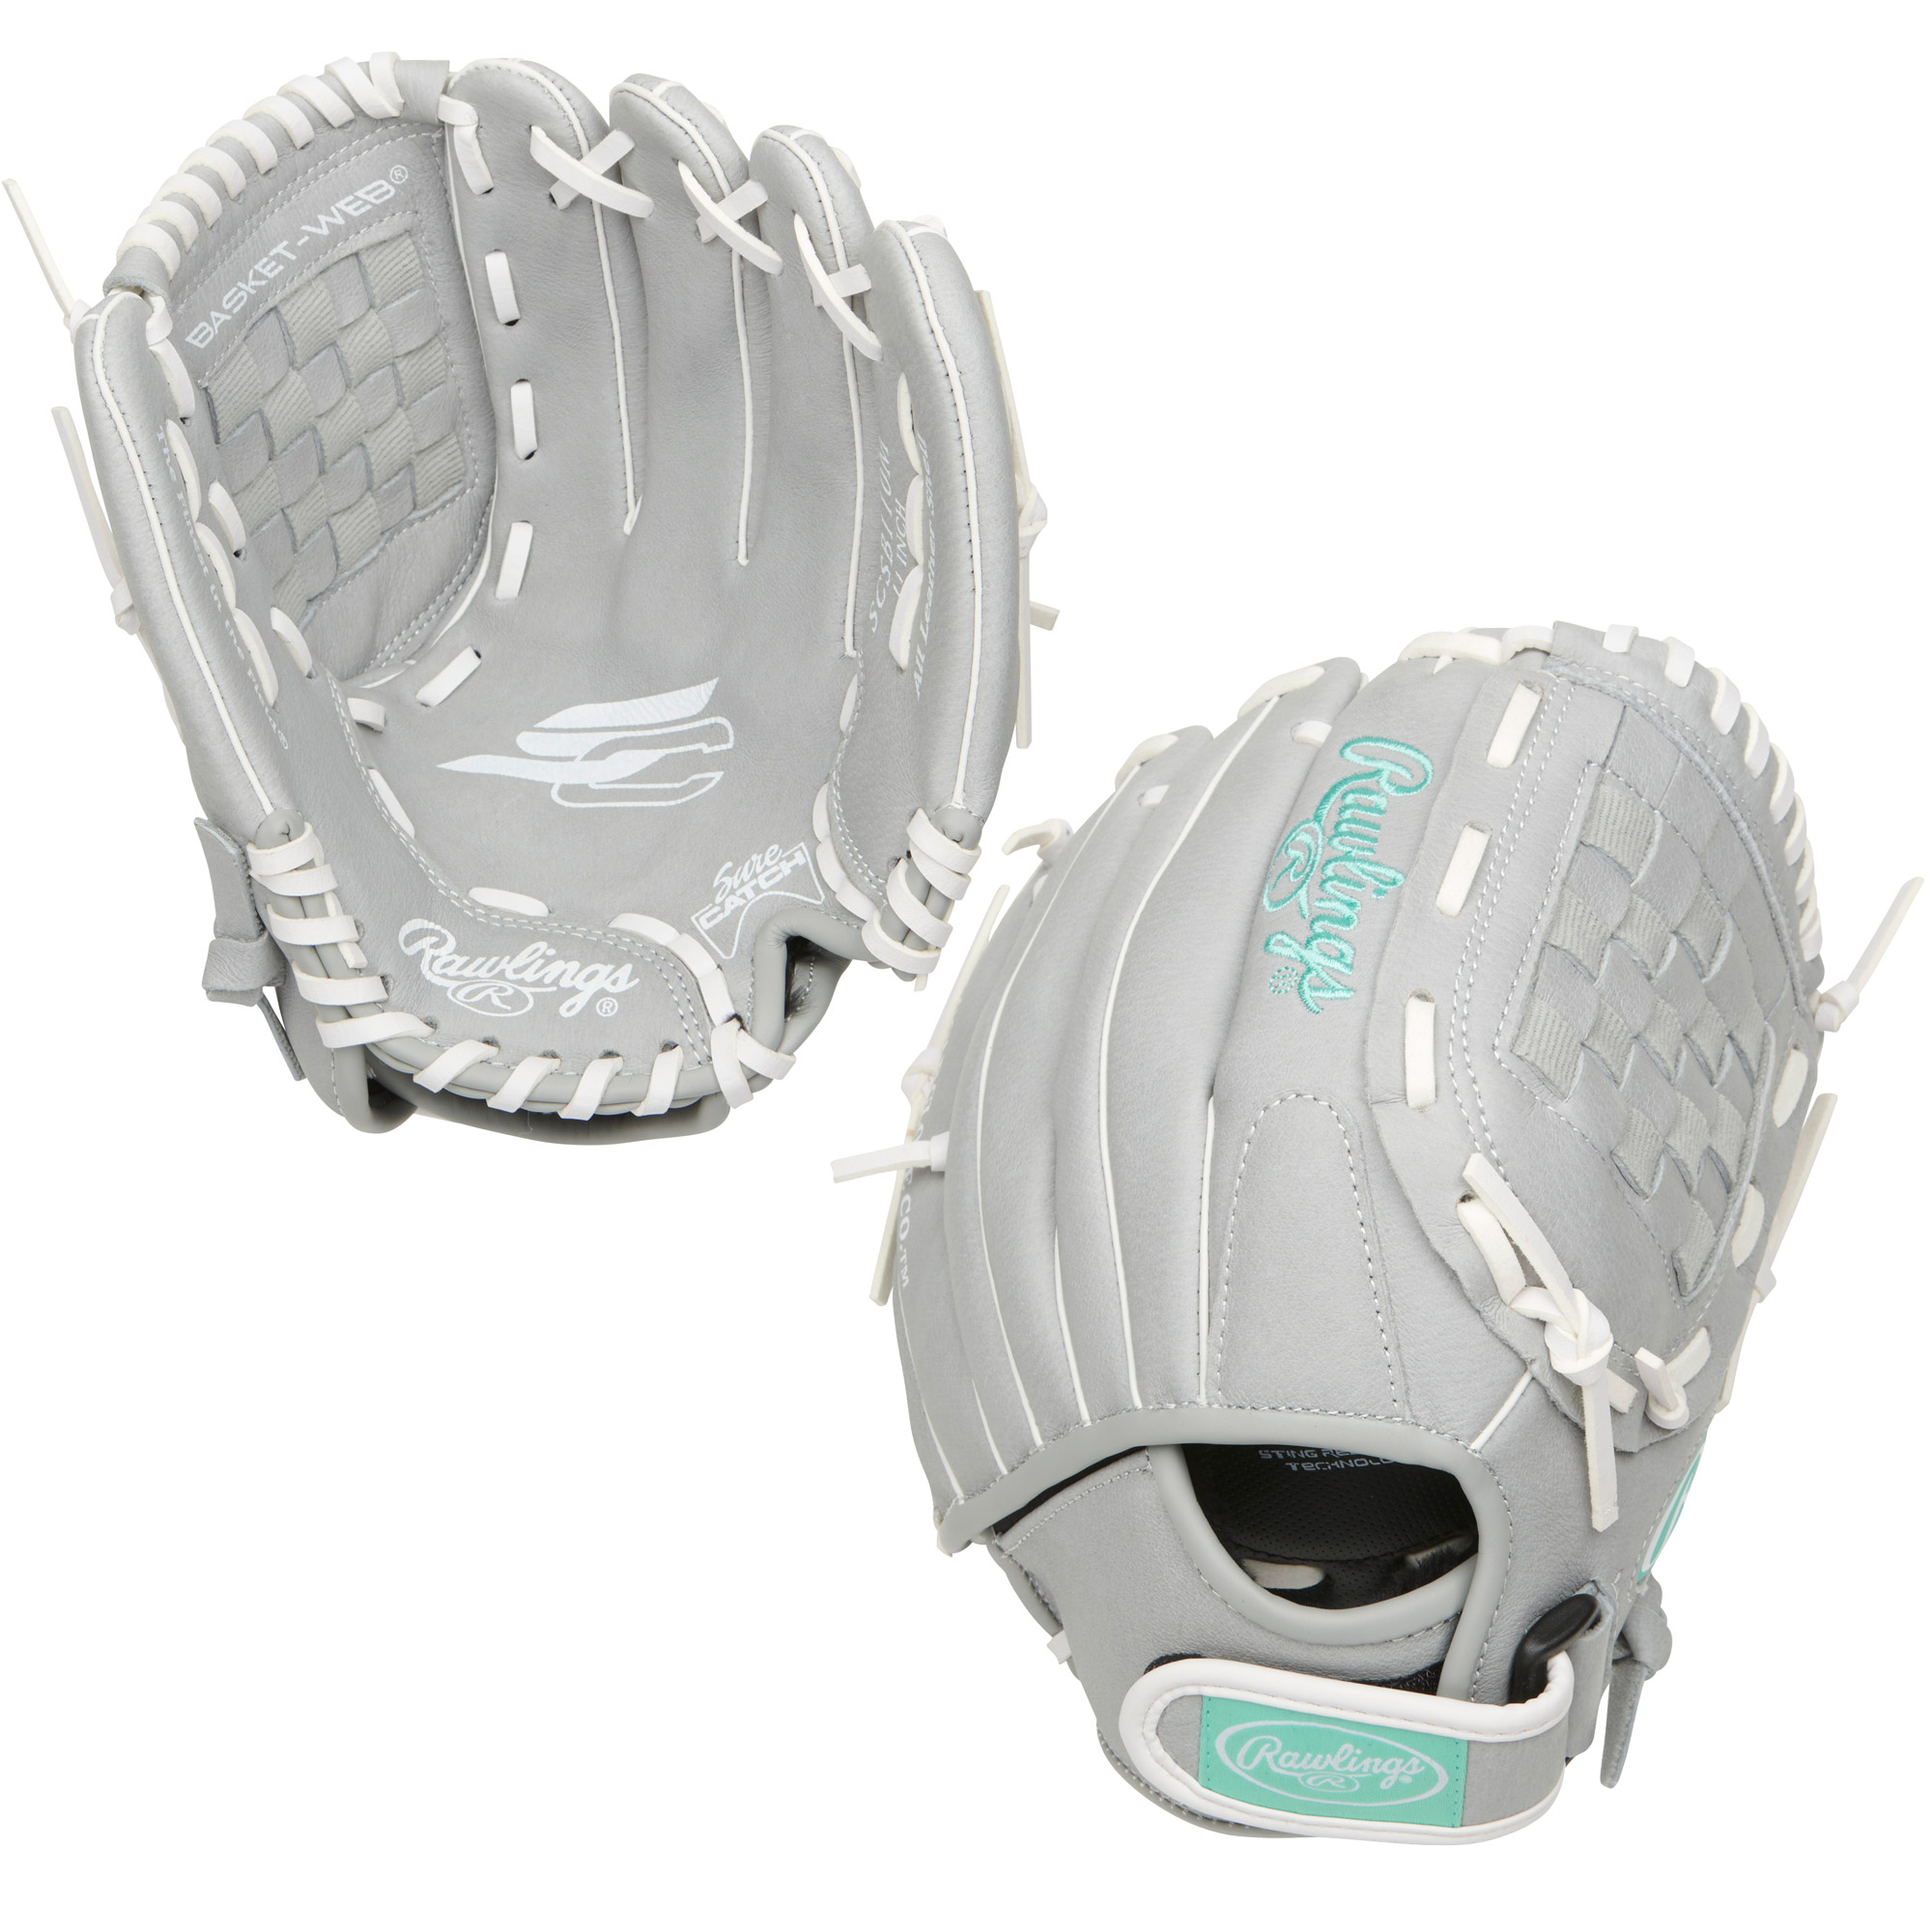 "SCSB110M Rawlings Sure Catch Fastpitch Ball Glove Basket Web 11"" - Regular MAIN"